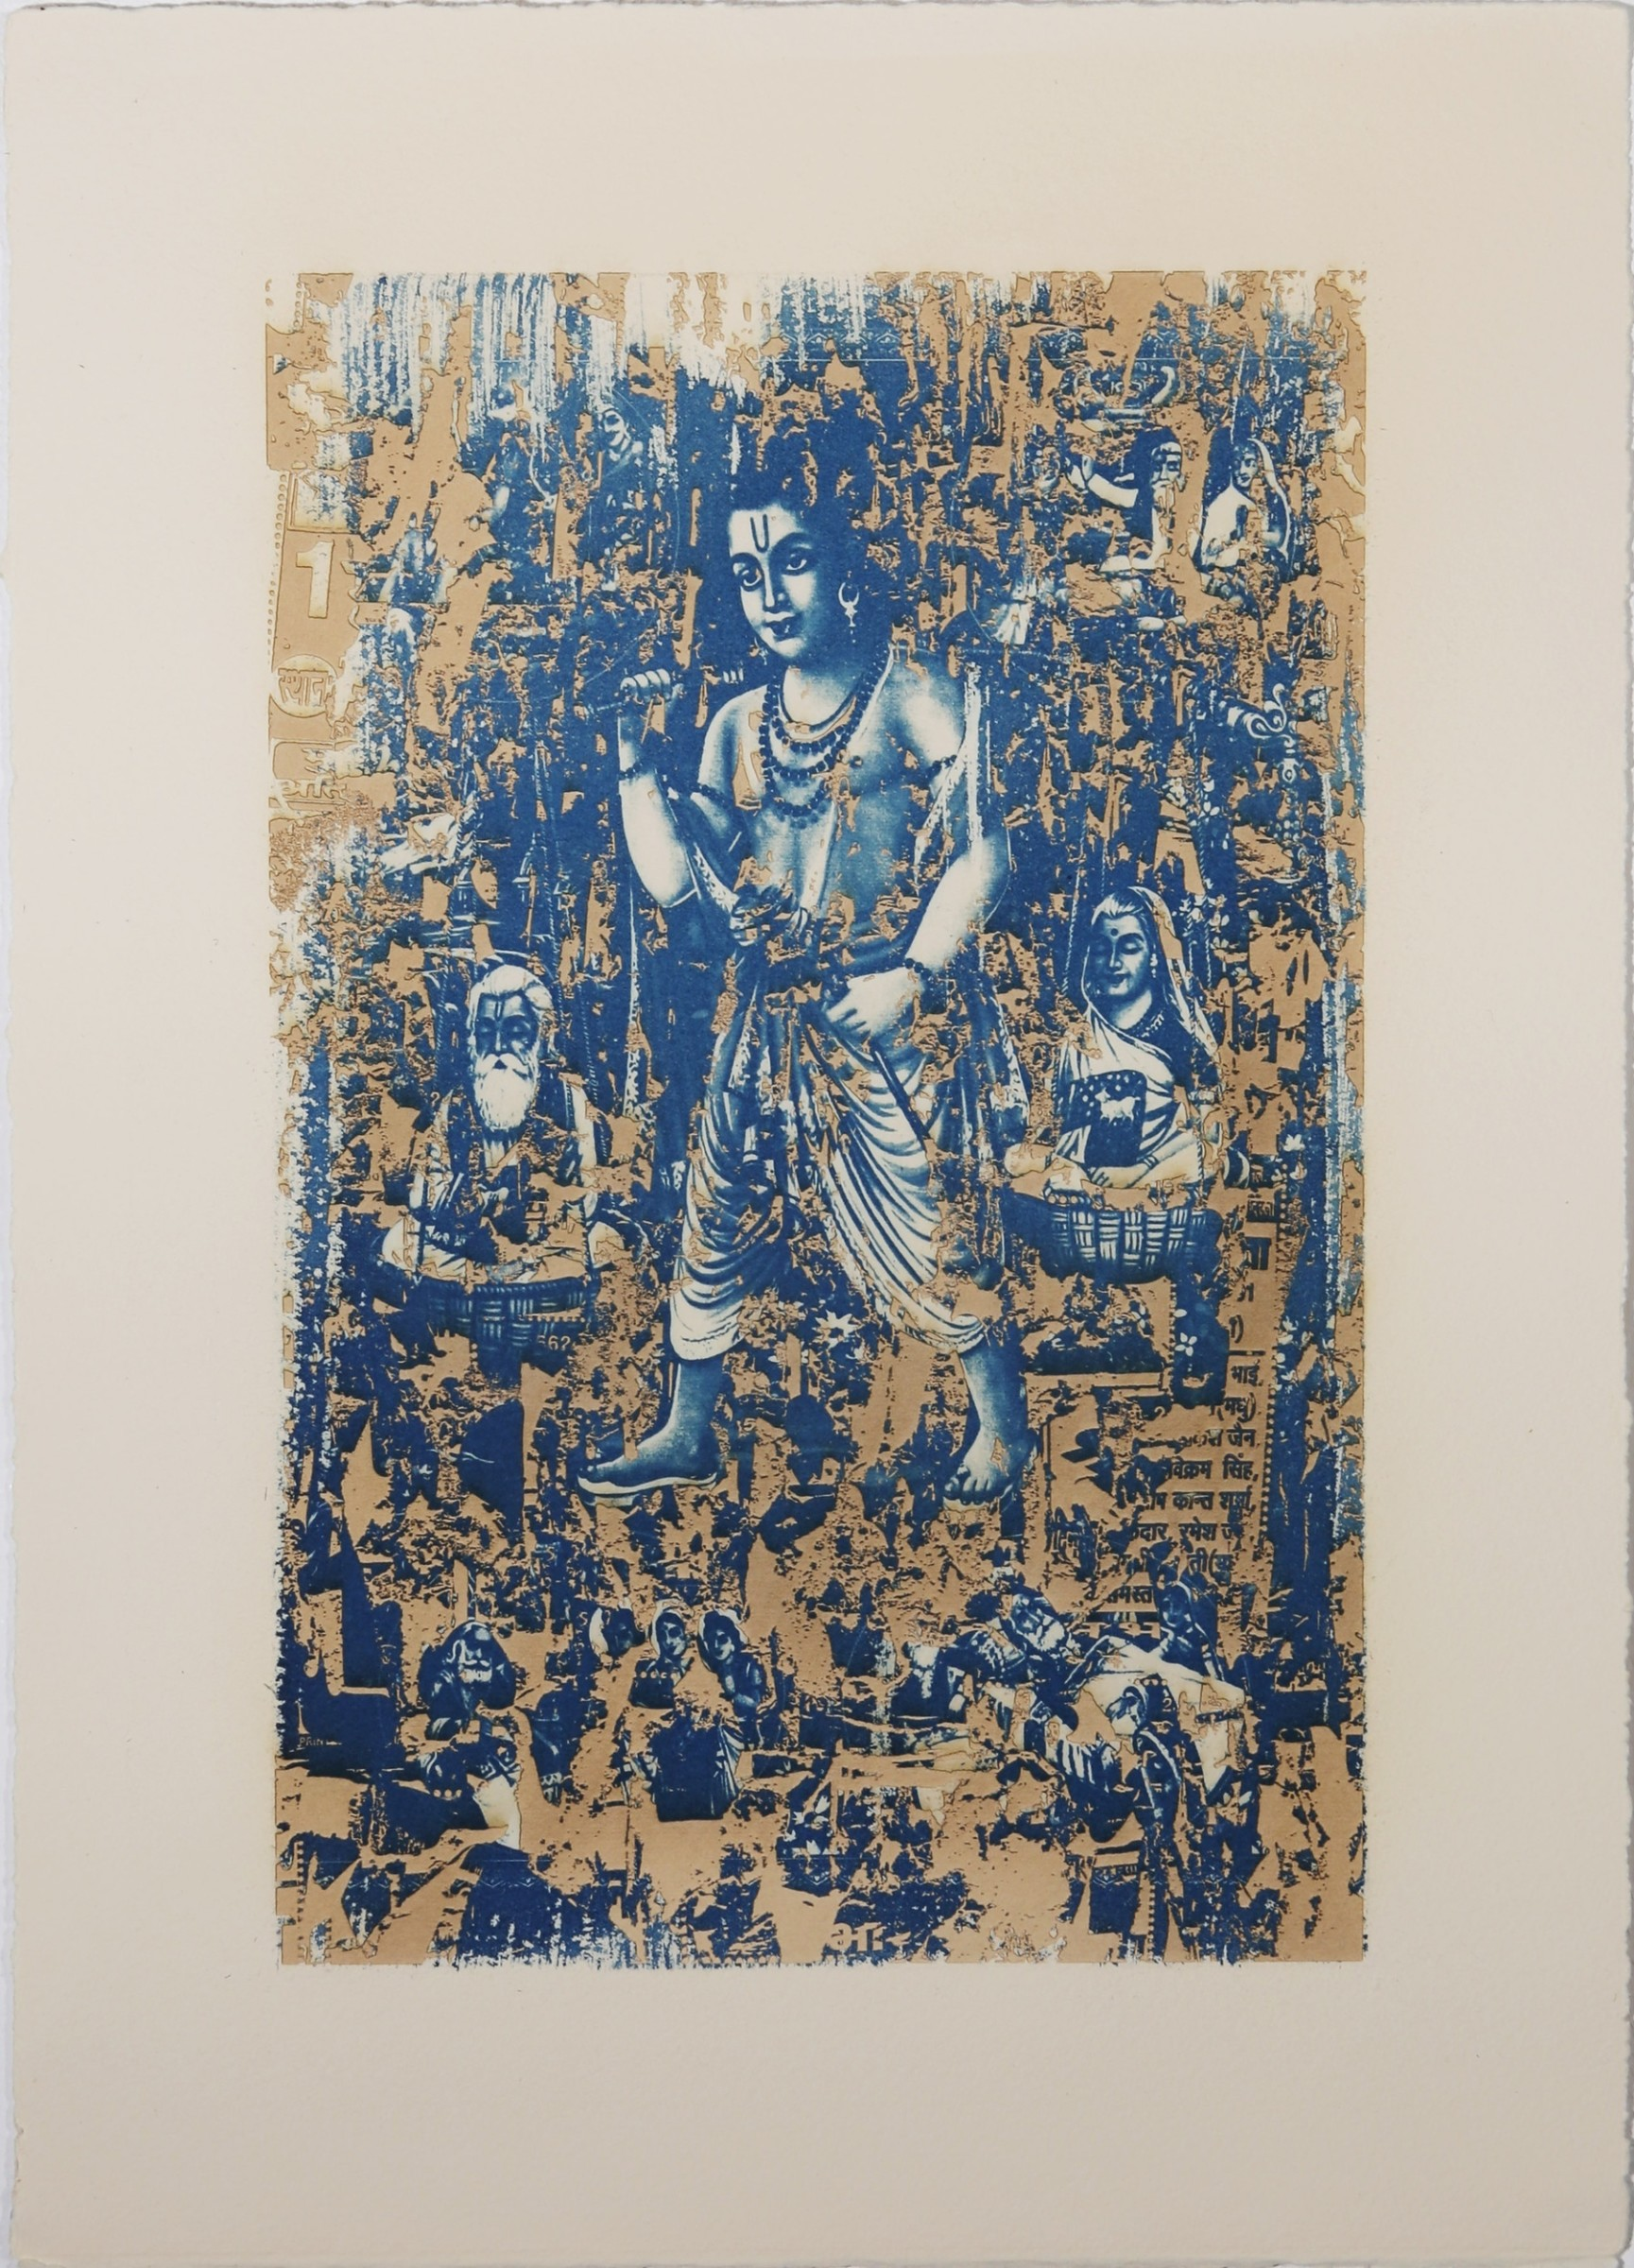 "<span class=""link fancybox-details-link""><a href=""/exhibitions/17/works/image_standalone801/"">View Detail Page</a></span><p><strong>Preeti Sood</strong></p><p>Shrawan Kumar, Indian Calendar Series</p><p>cyanotype with engraving, ed of 10</p><p>30 x 43cm</p><p>£525 framed</p><p>£475 unframed</p>"